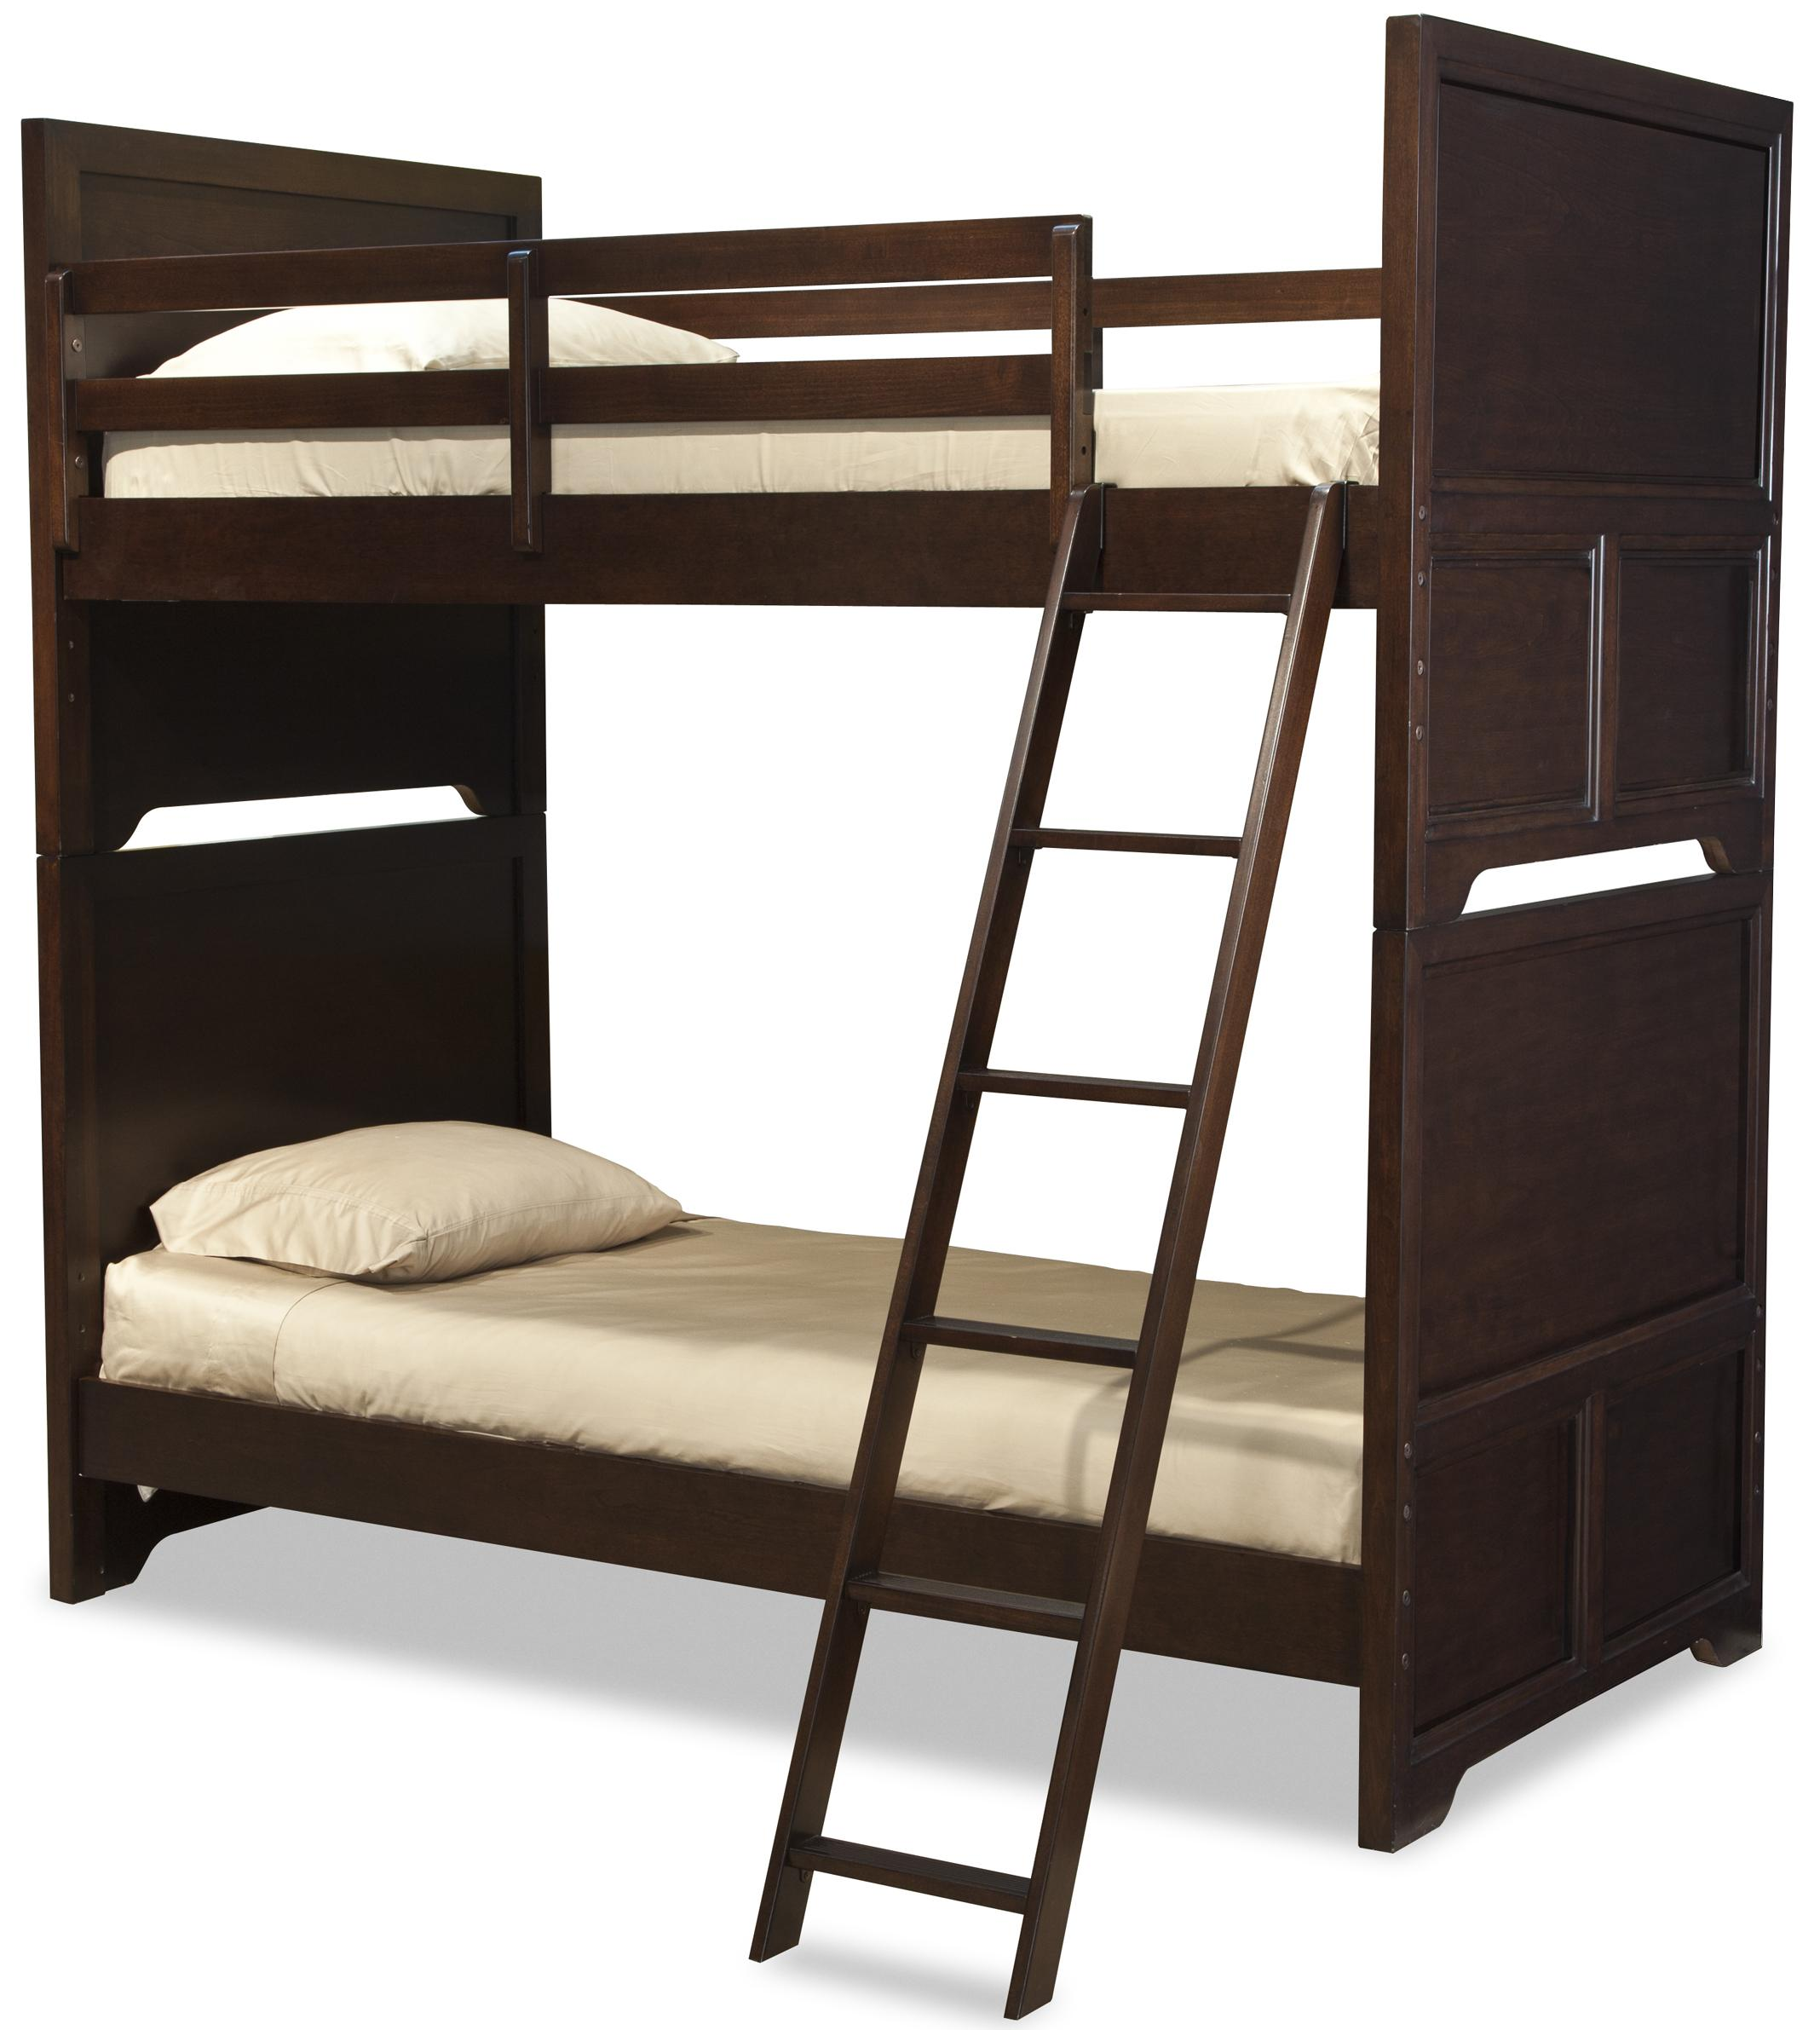 Legacy Classic Kids Benchmark Twin over Twin Bunk Bed - Item Number: 2970-8110K